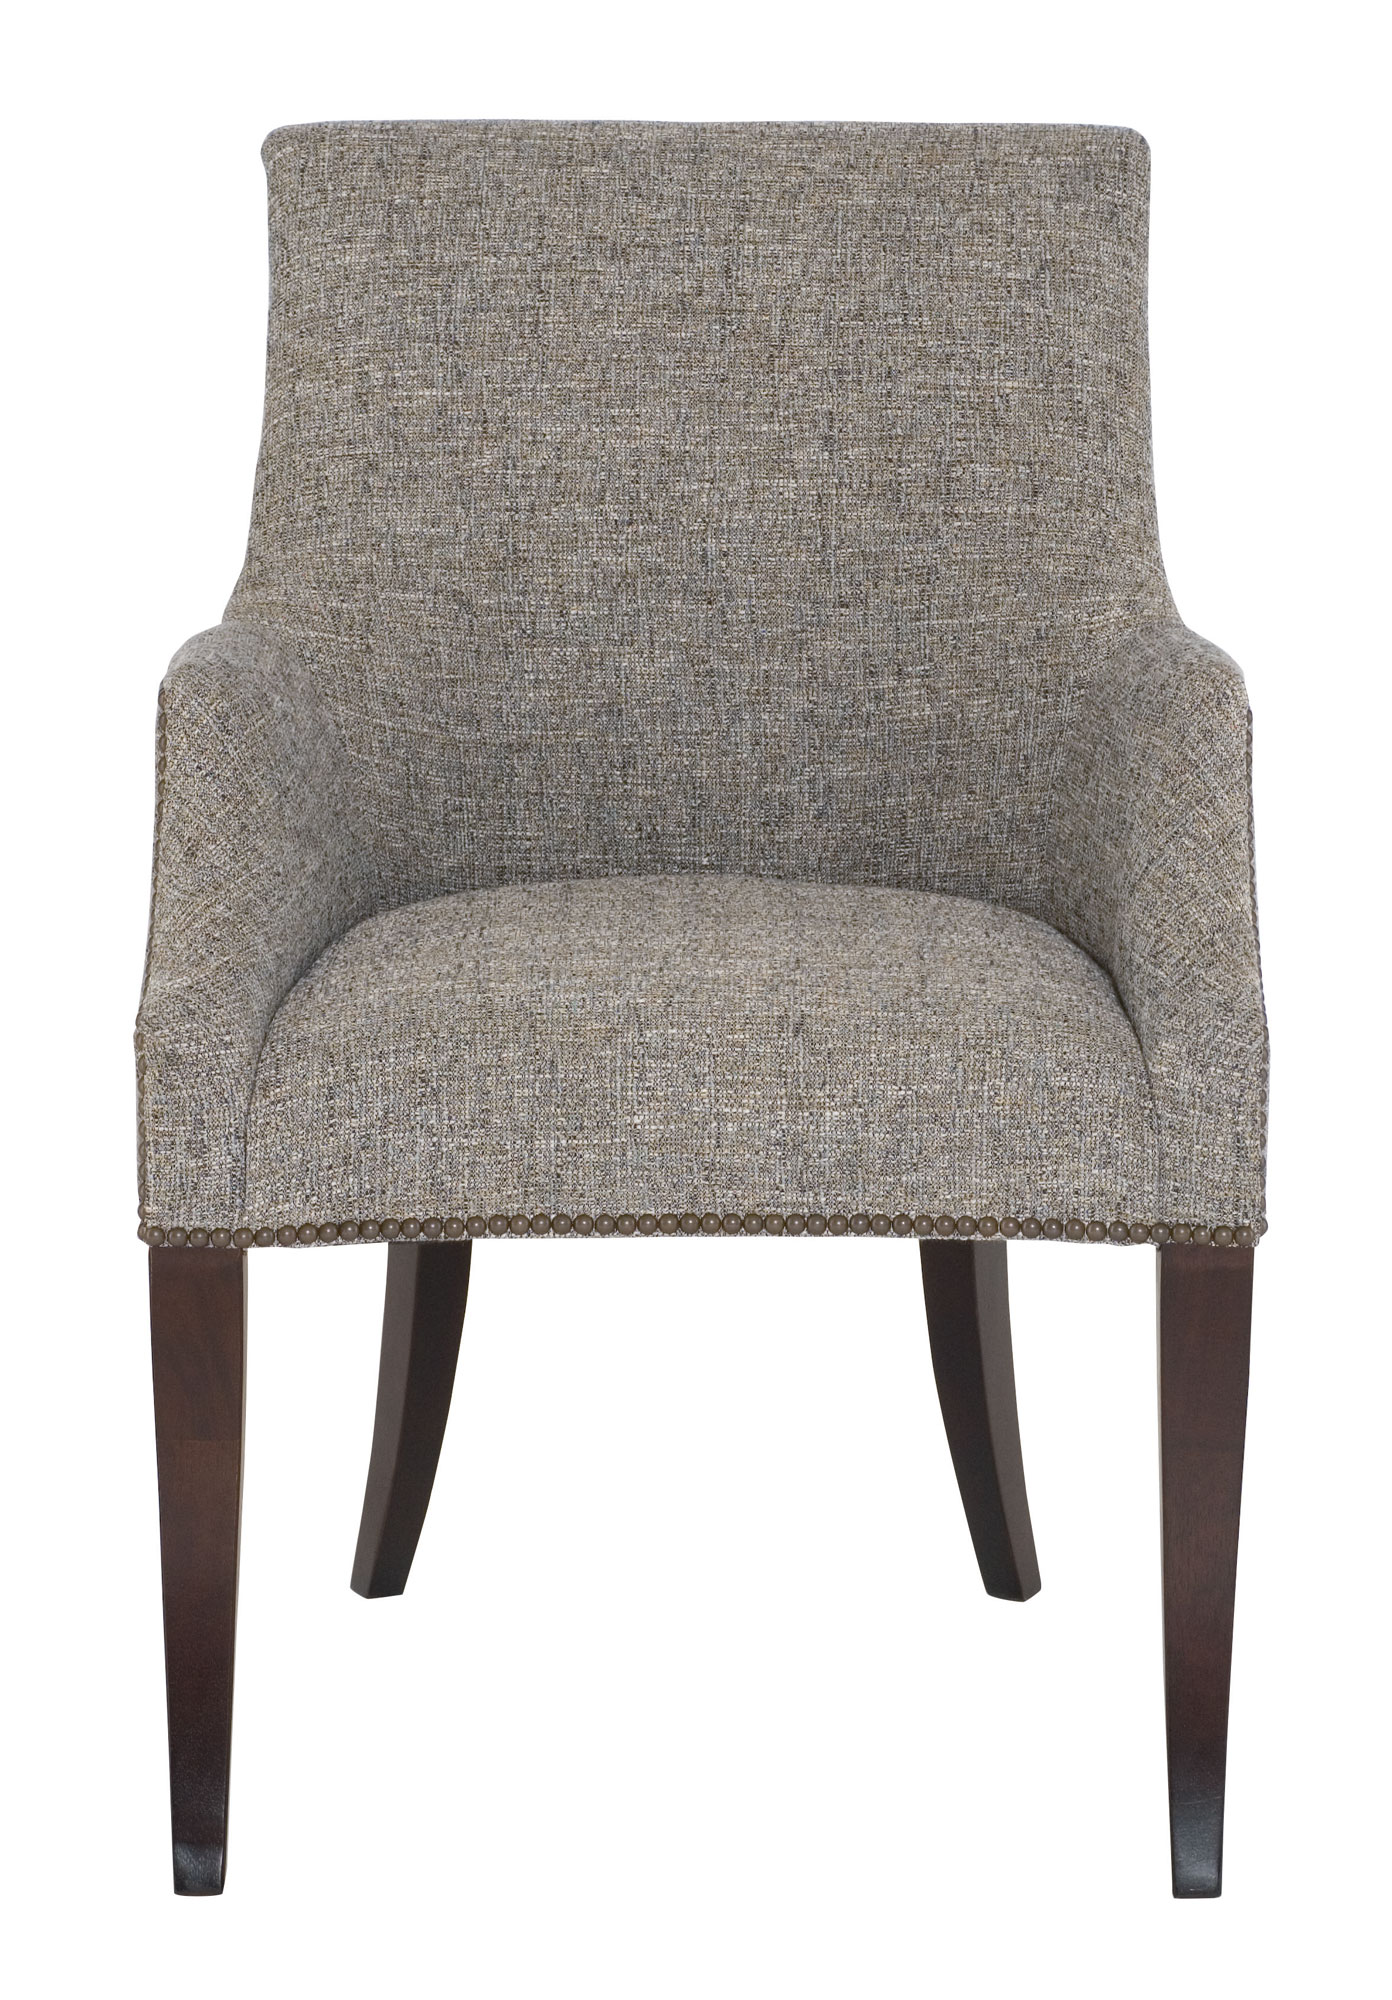 nailhead upholstered dining chair chairs under 1000 rs | bernhardt